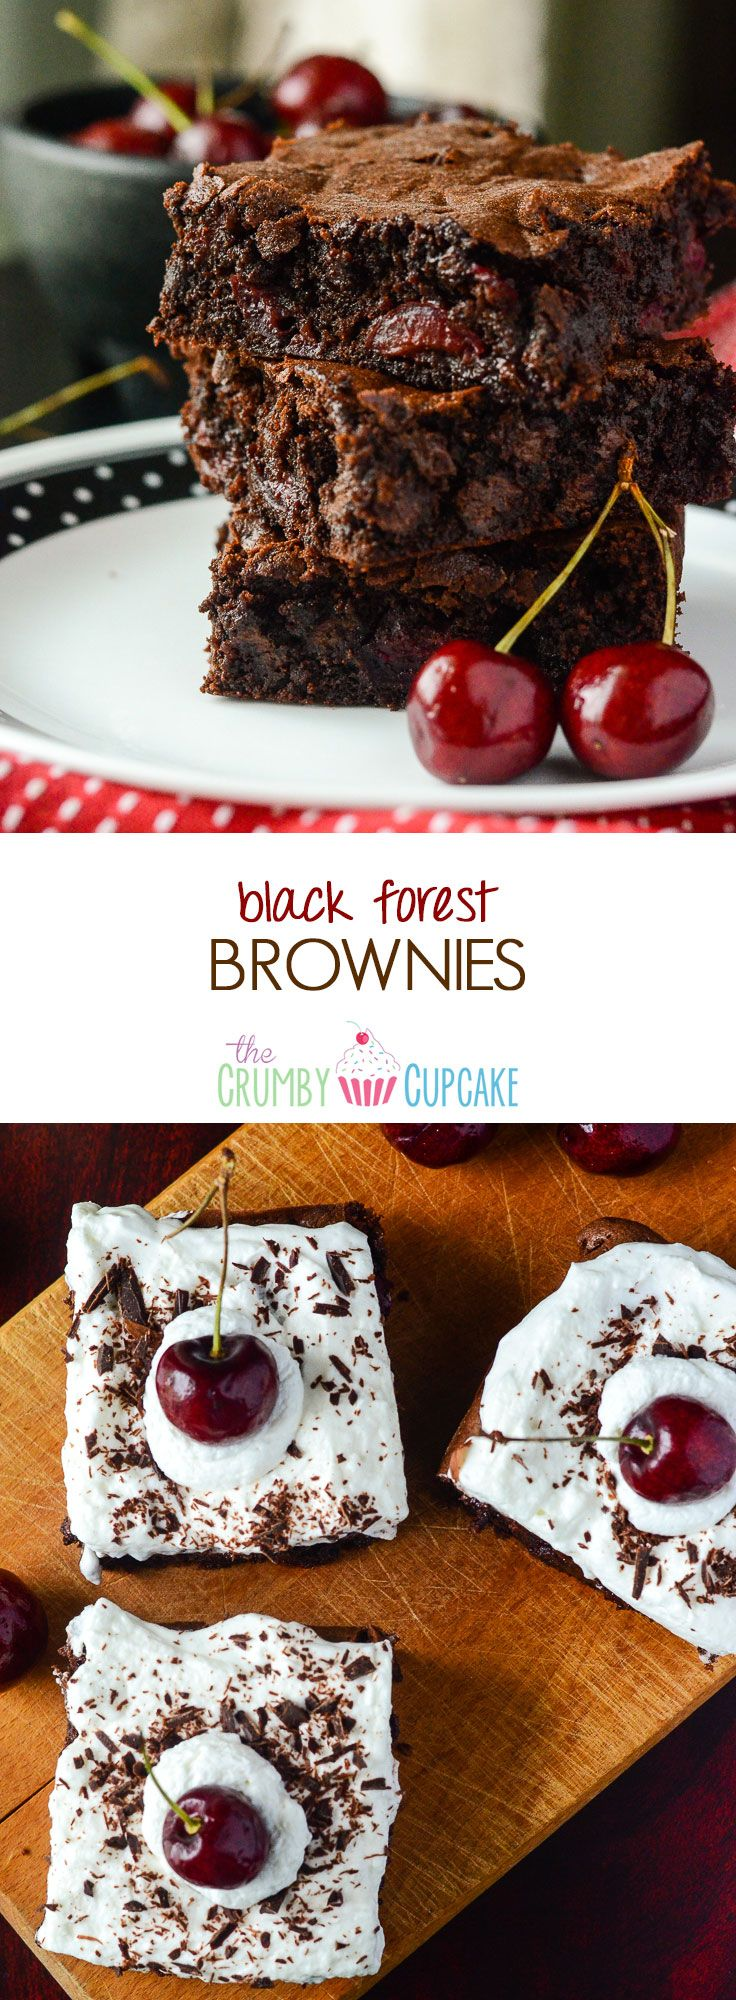 Black Forest Brownies | Super fudgy brownies, bursting with fresh cherries and chocolate chunks - truly a chocolate lover's dream!